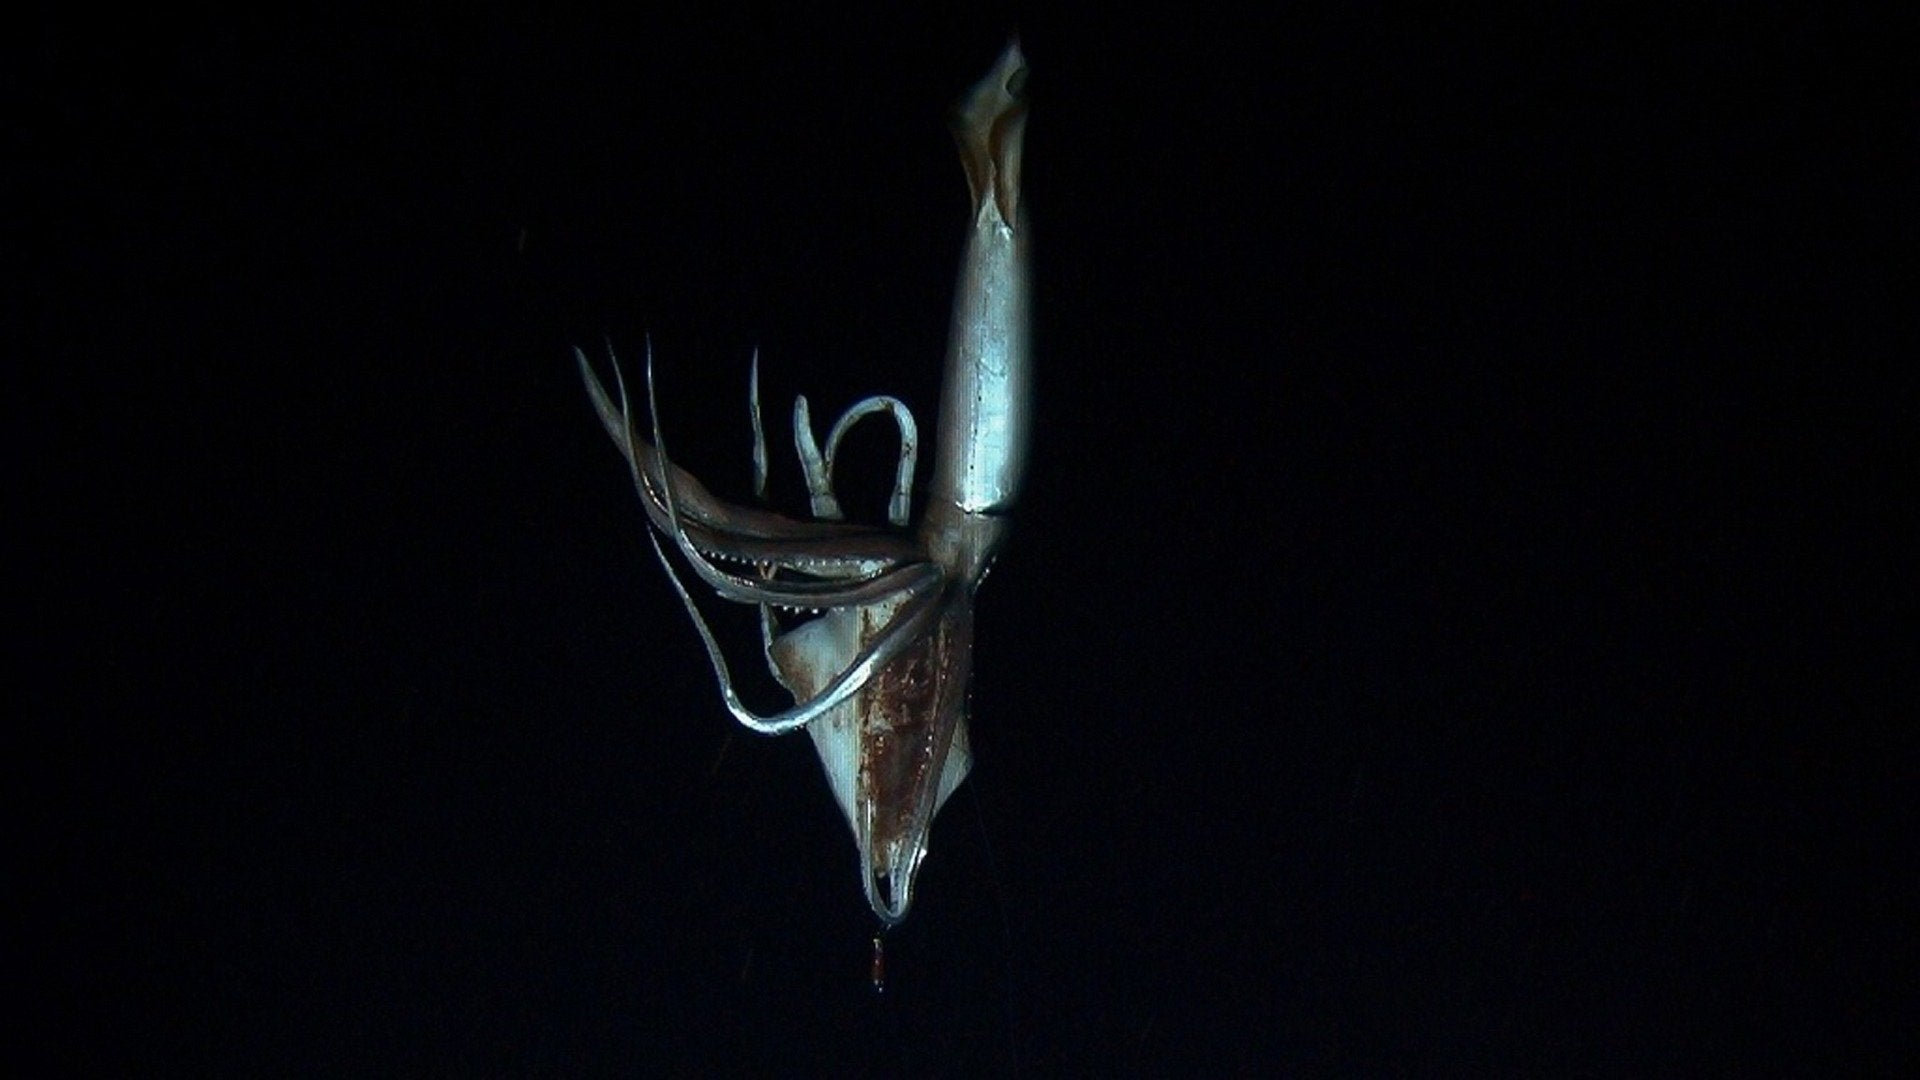 Monster Squid: Hunting a Killer - Terror in the Abyss